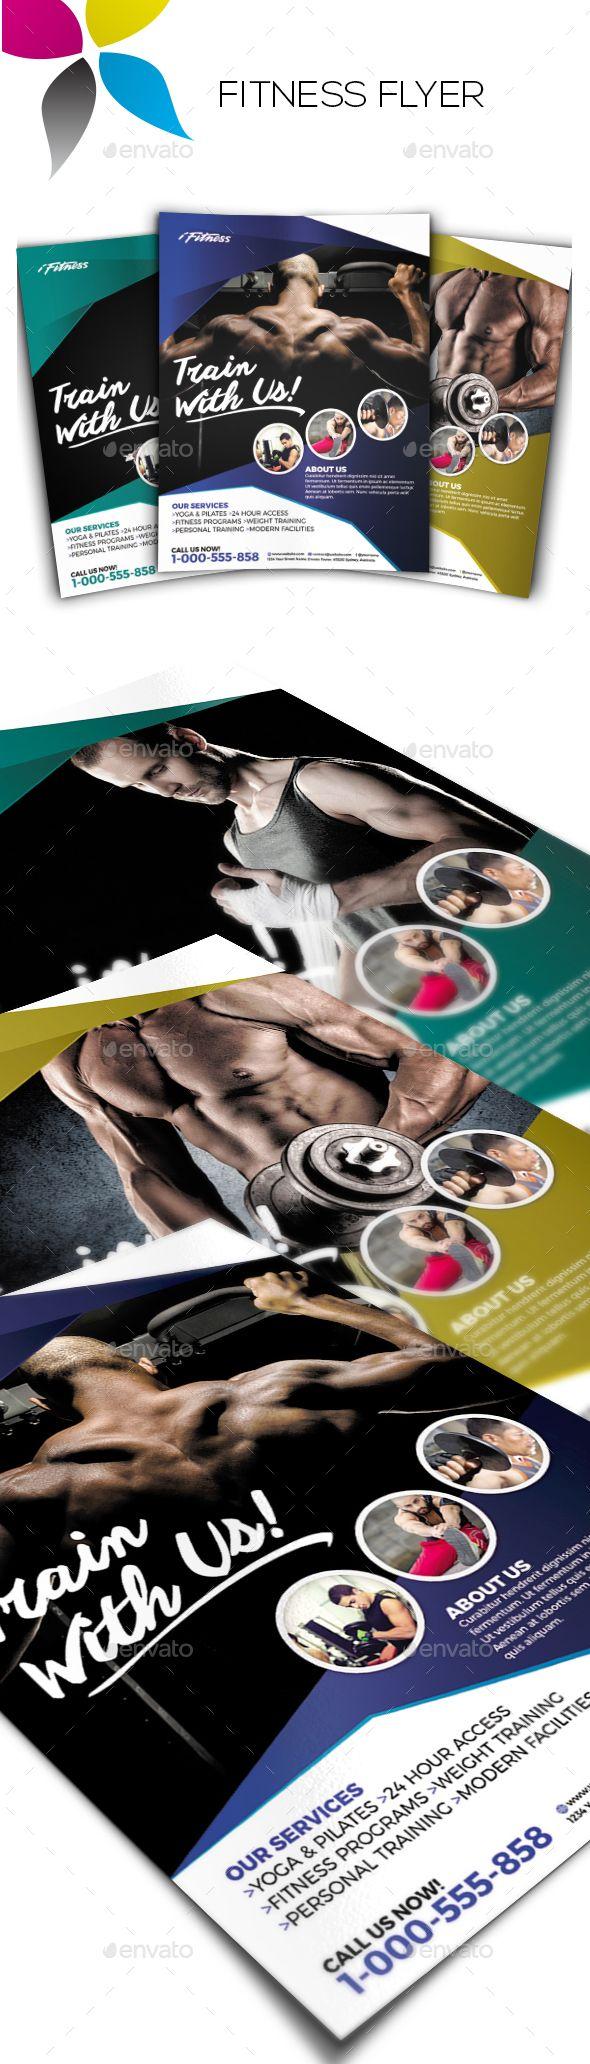 Healthcare-Advertising-Fitness-Flyer-by-inddesigner-A4-210x297mm-US-Letter-8.5x11in-Bleed-5-mm-Adobe-Ph Healthcare Advertising : Fitness Flyer by inddesigner A4 210x297mm US Letter 8.5x11in Bleed 5 mm Adobe Ph...